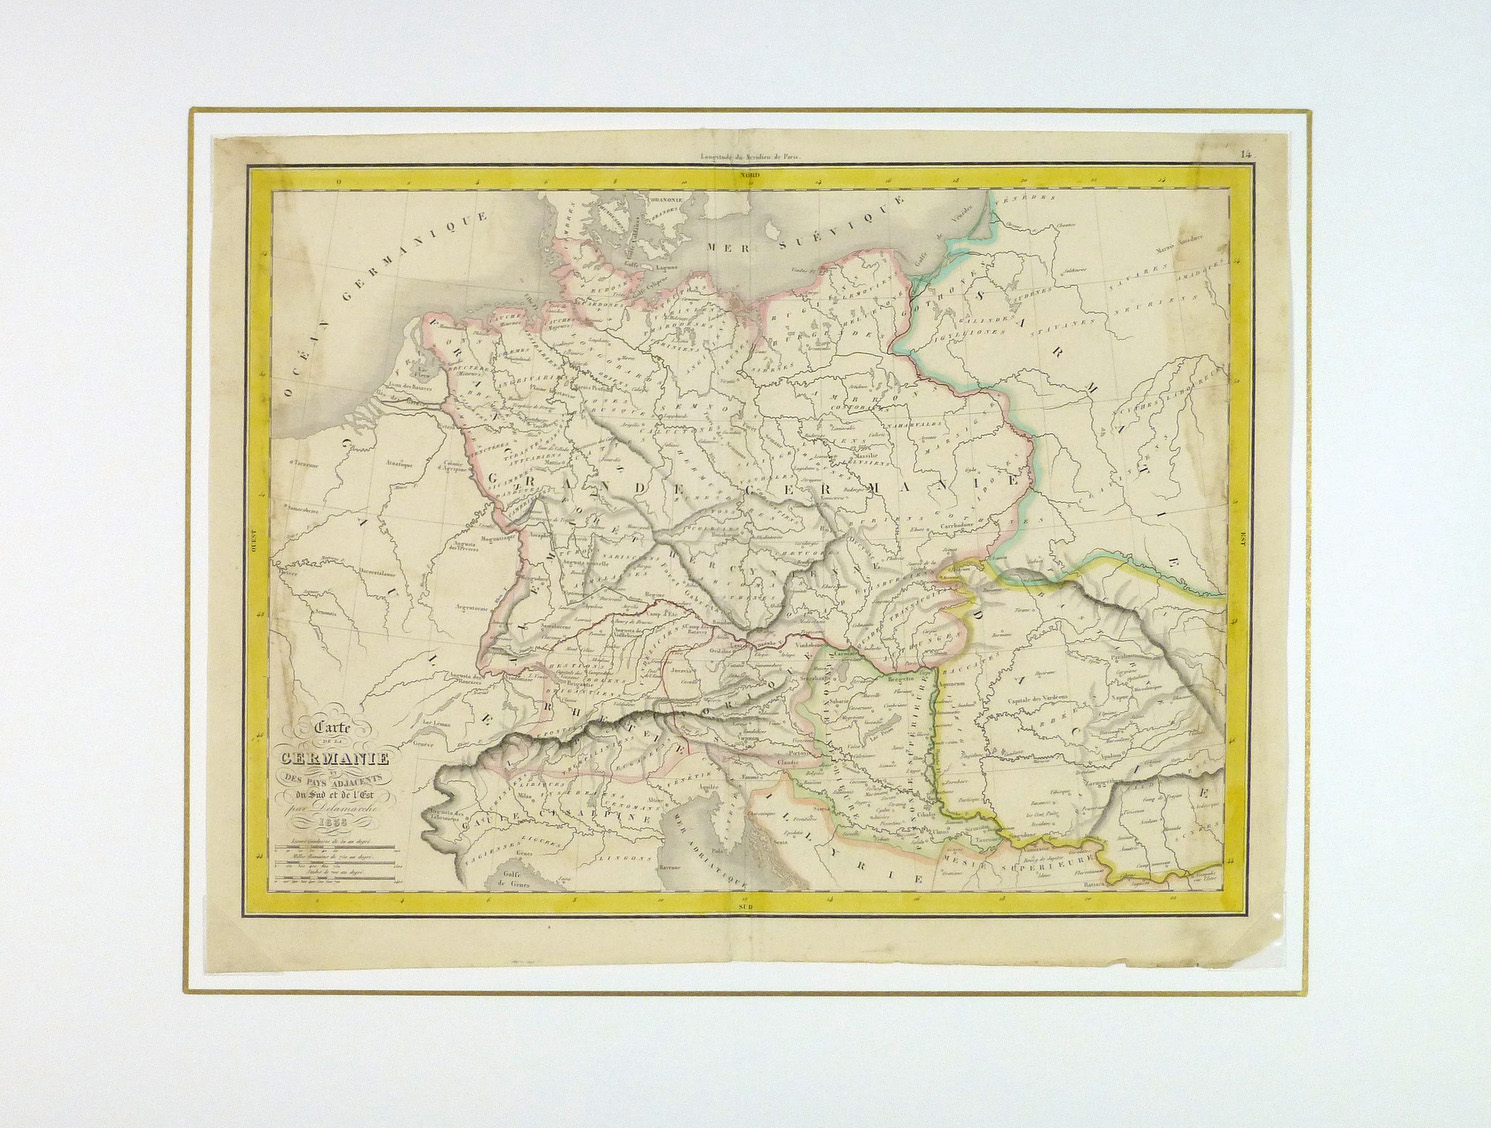 Ancient Germany Map, 1838-matted-8187K